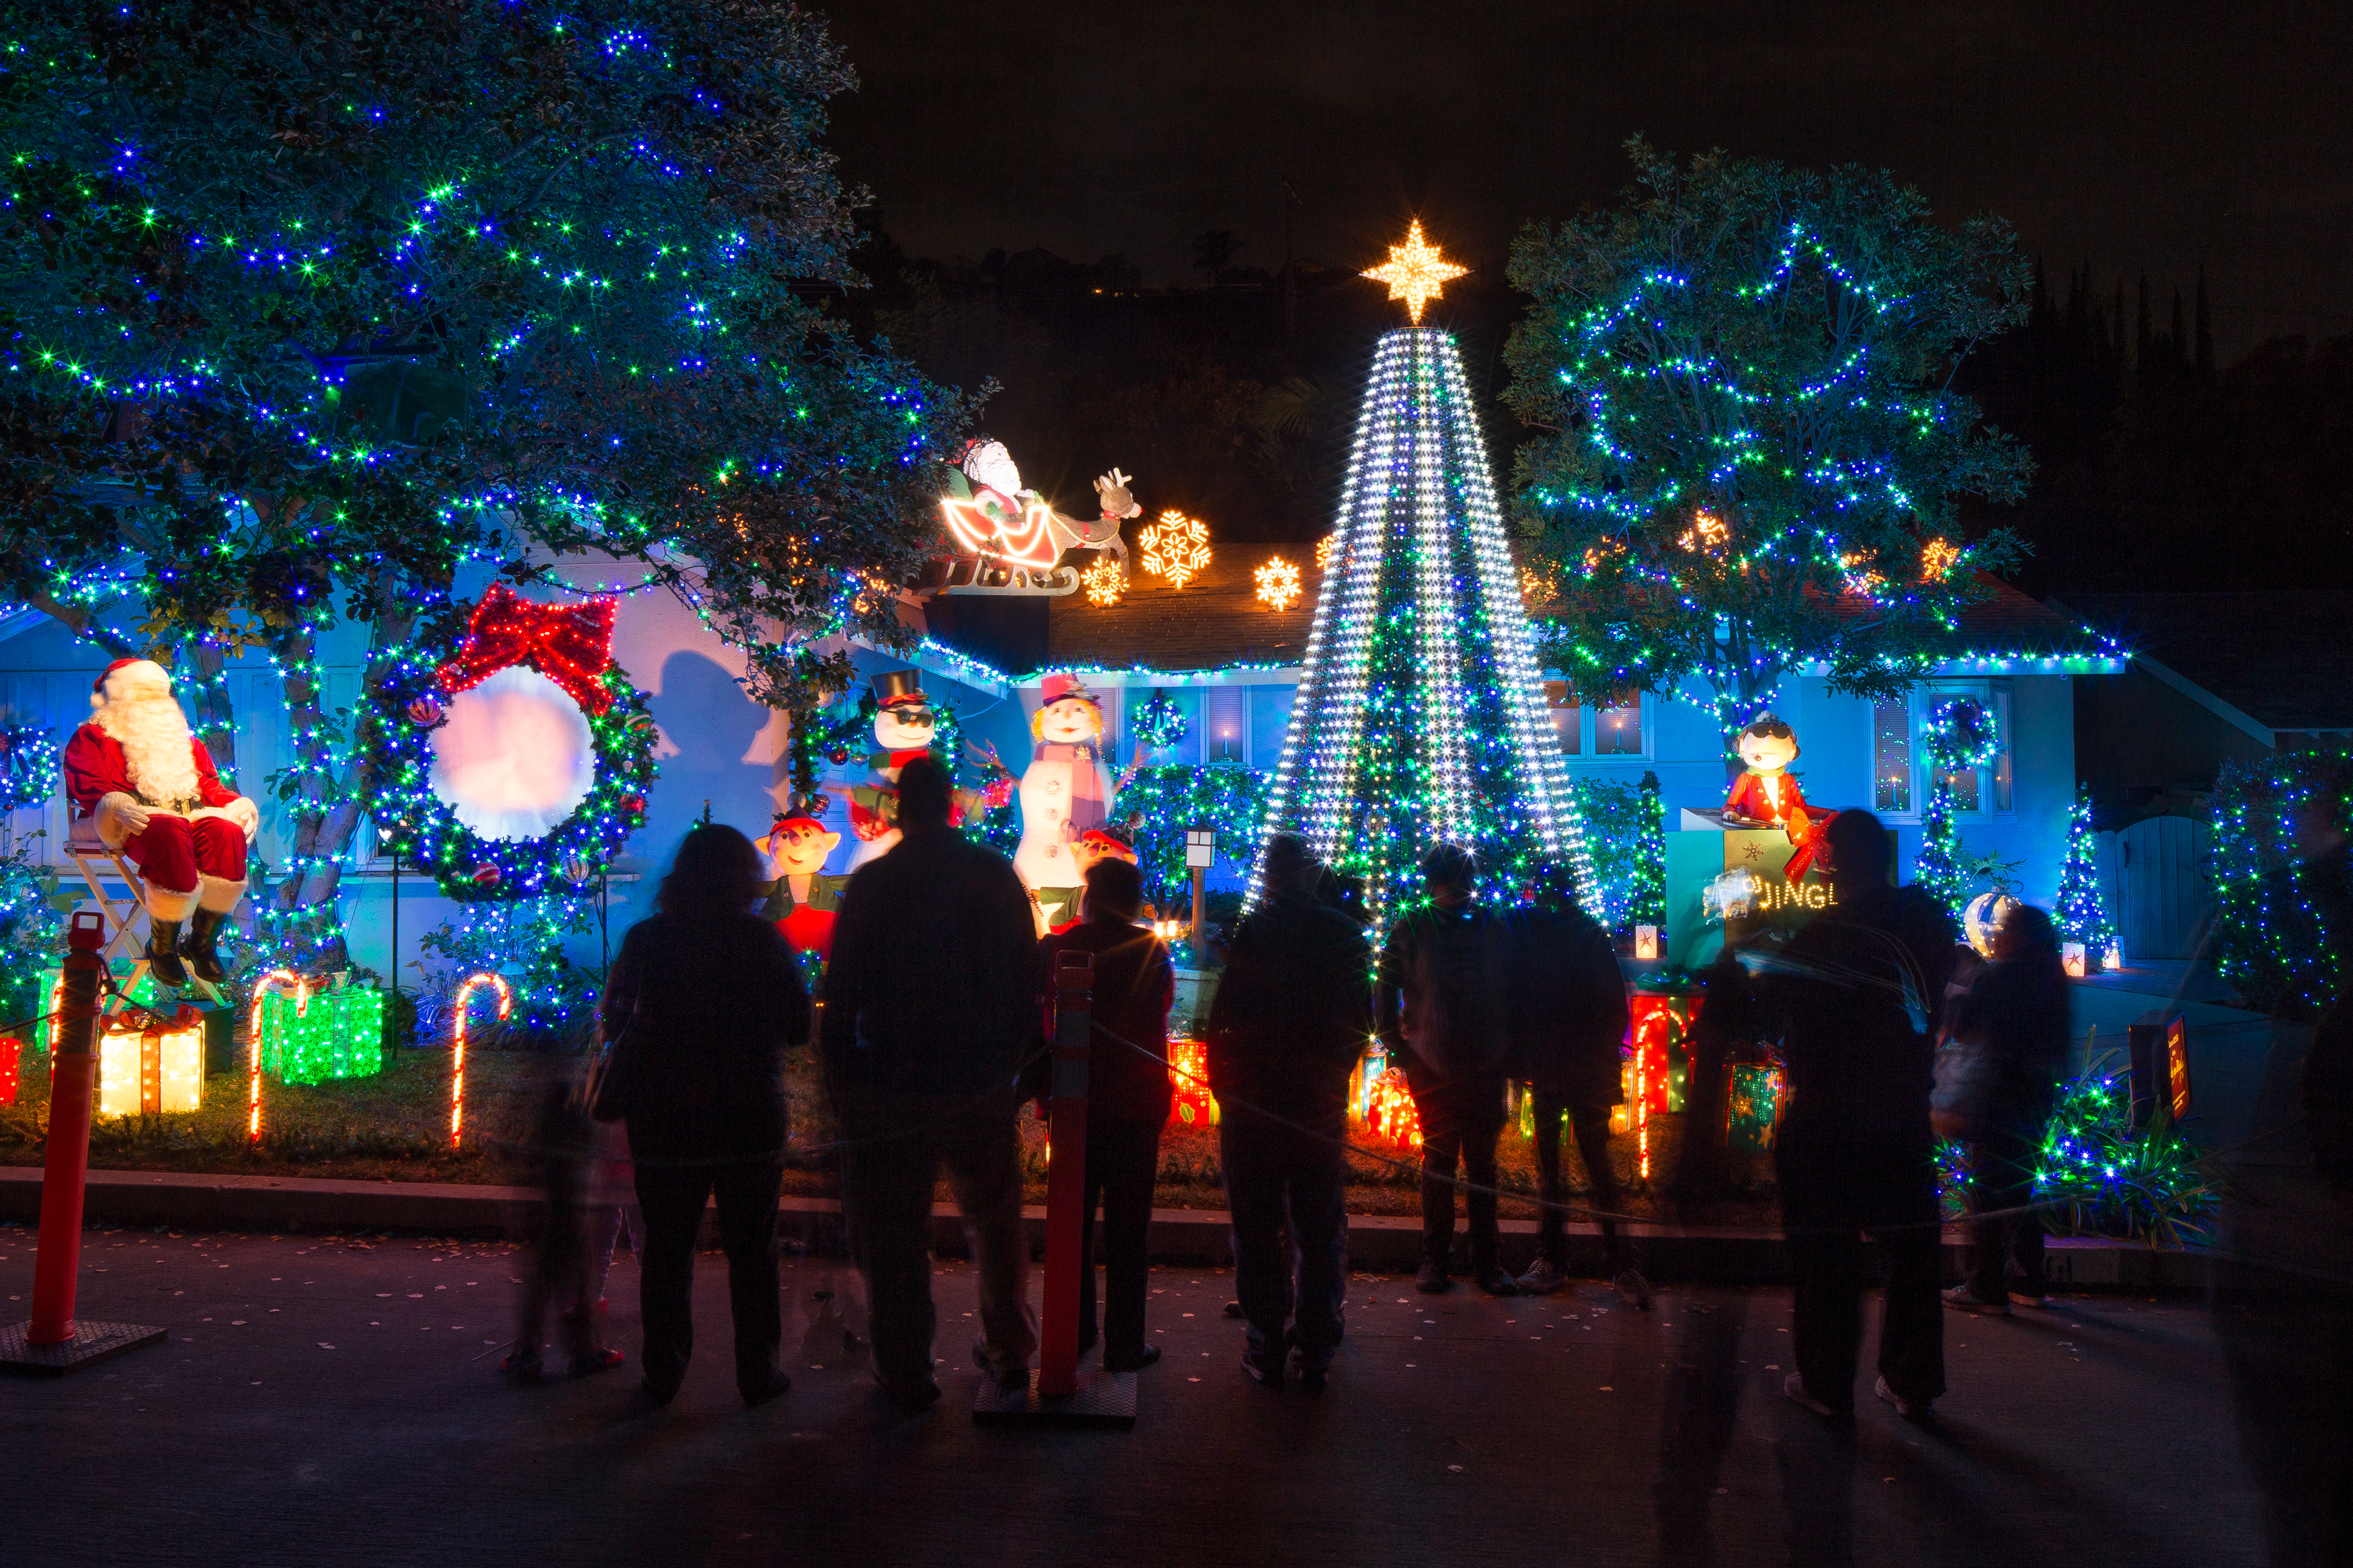 A crowd gathers in front of a glowing holiday display